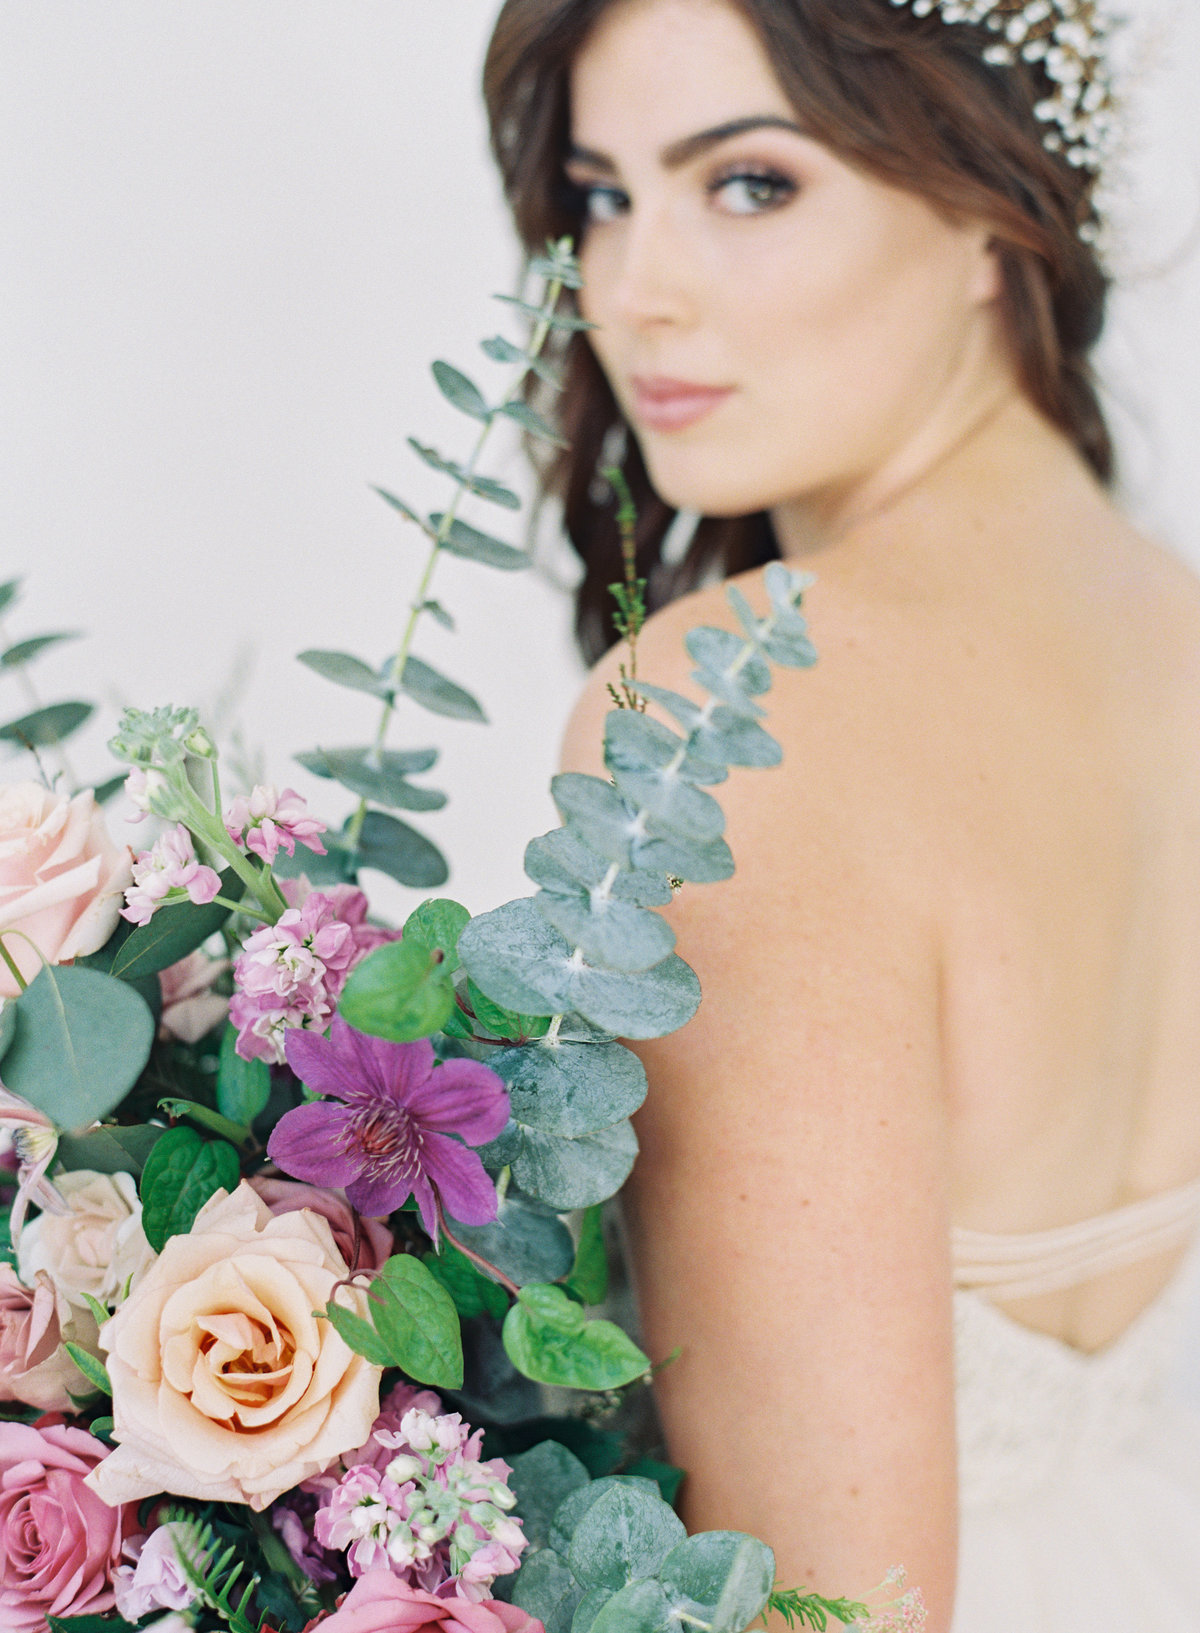 Raela is a Nashville wedding planner with a heart for intentional, romantic wedding design.